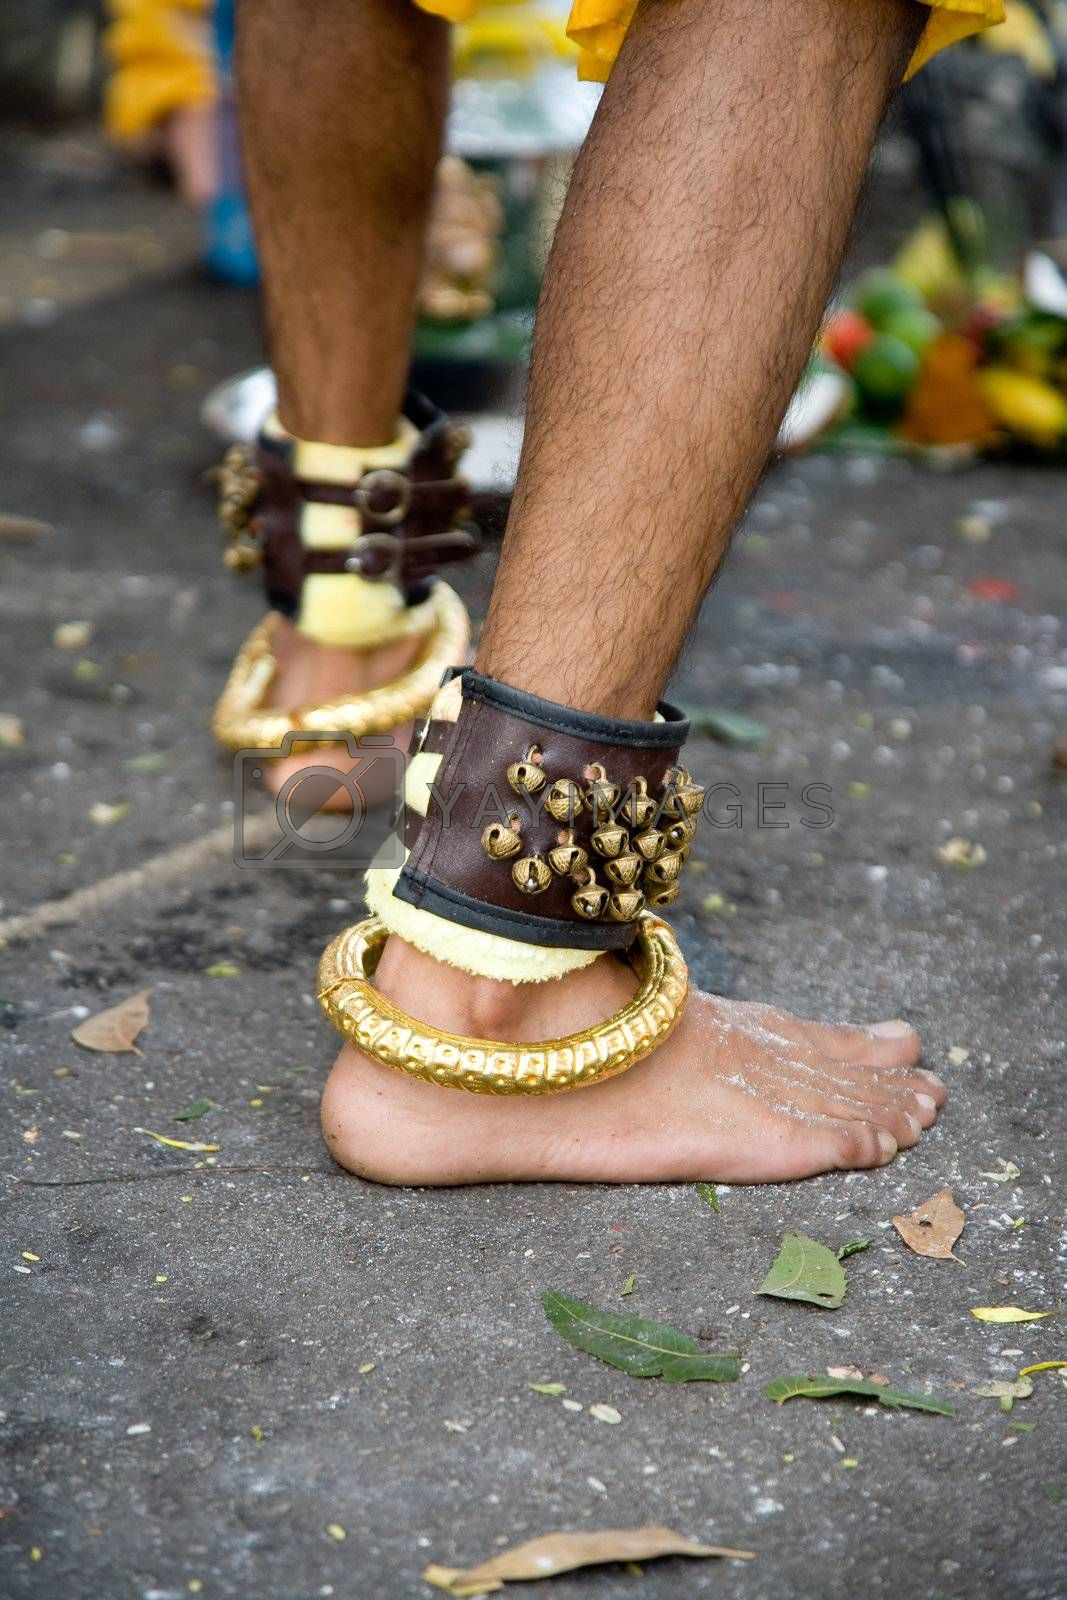 thaipusam devotee wearing a bracelet of bells and gold